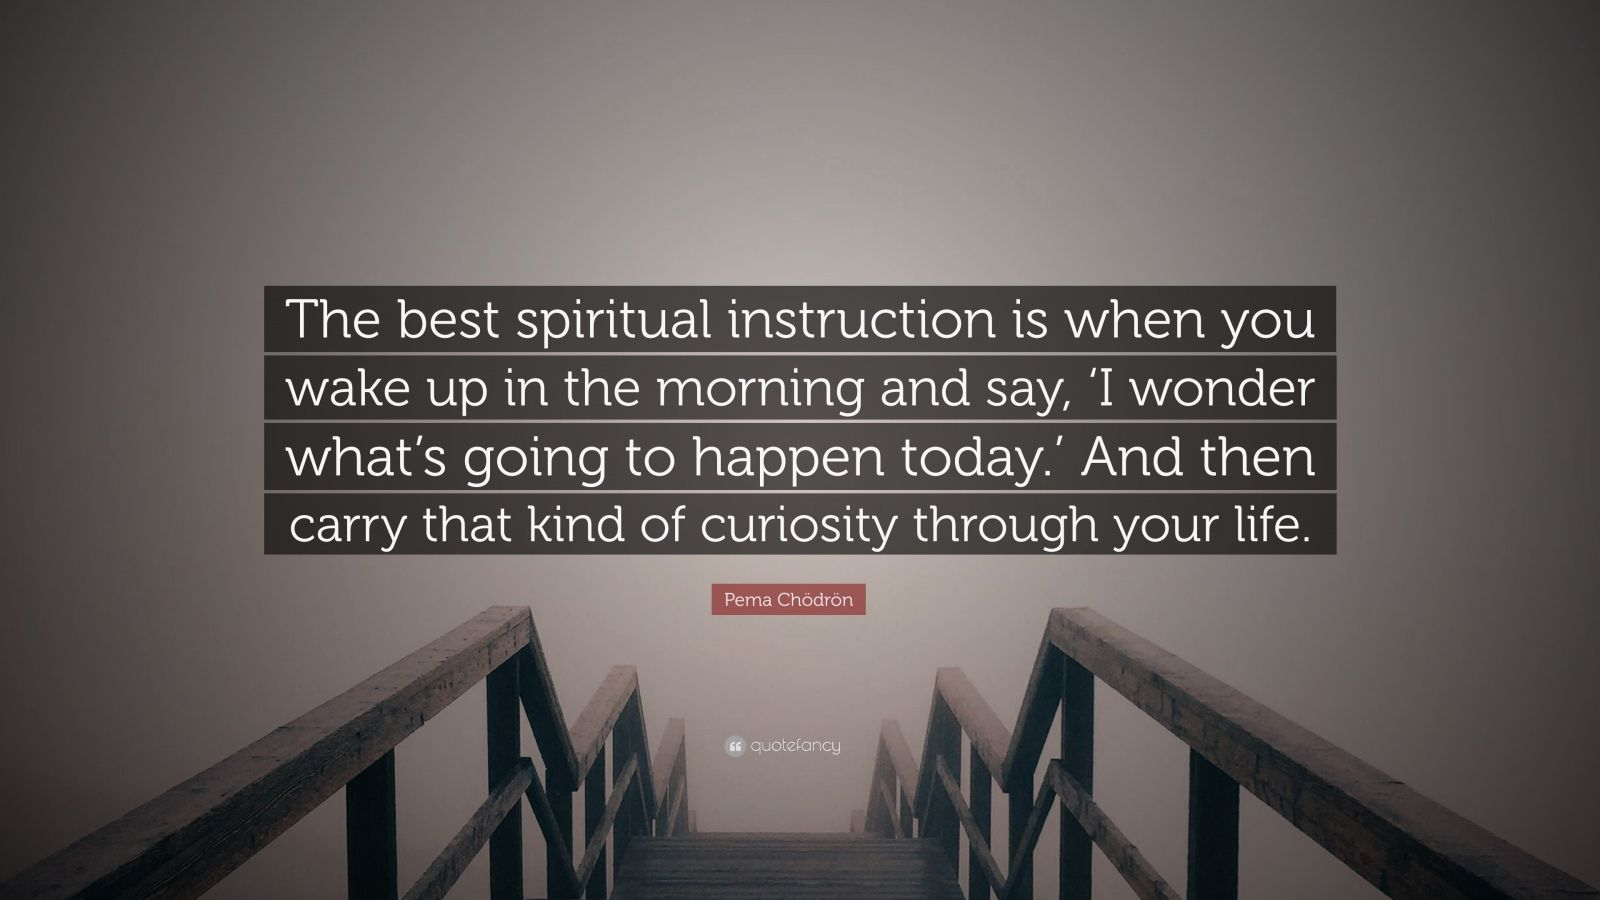 """Pema Chödrön Quote: """"The best spiritual instruction is when you wake up in the morning and say, 'I wonder what's going to happen today.' And then carry that kind of curiosity through your life."""""""